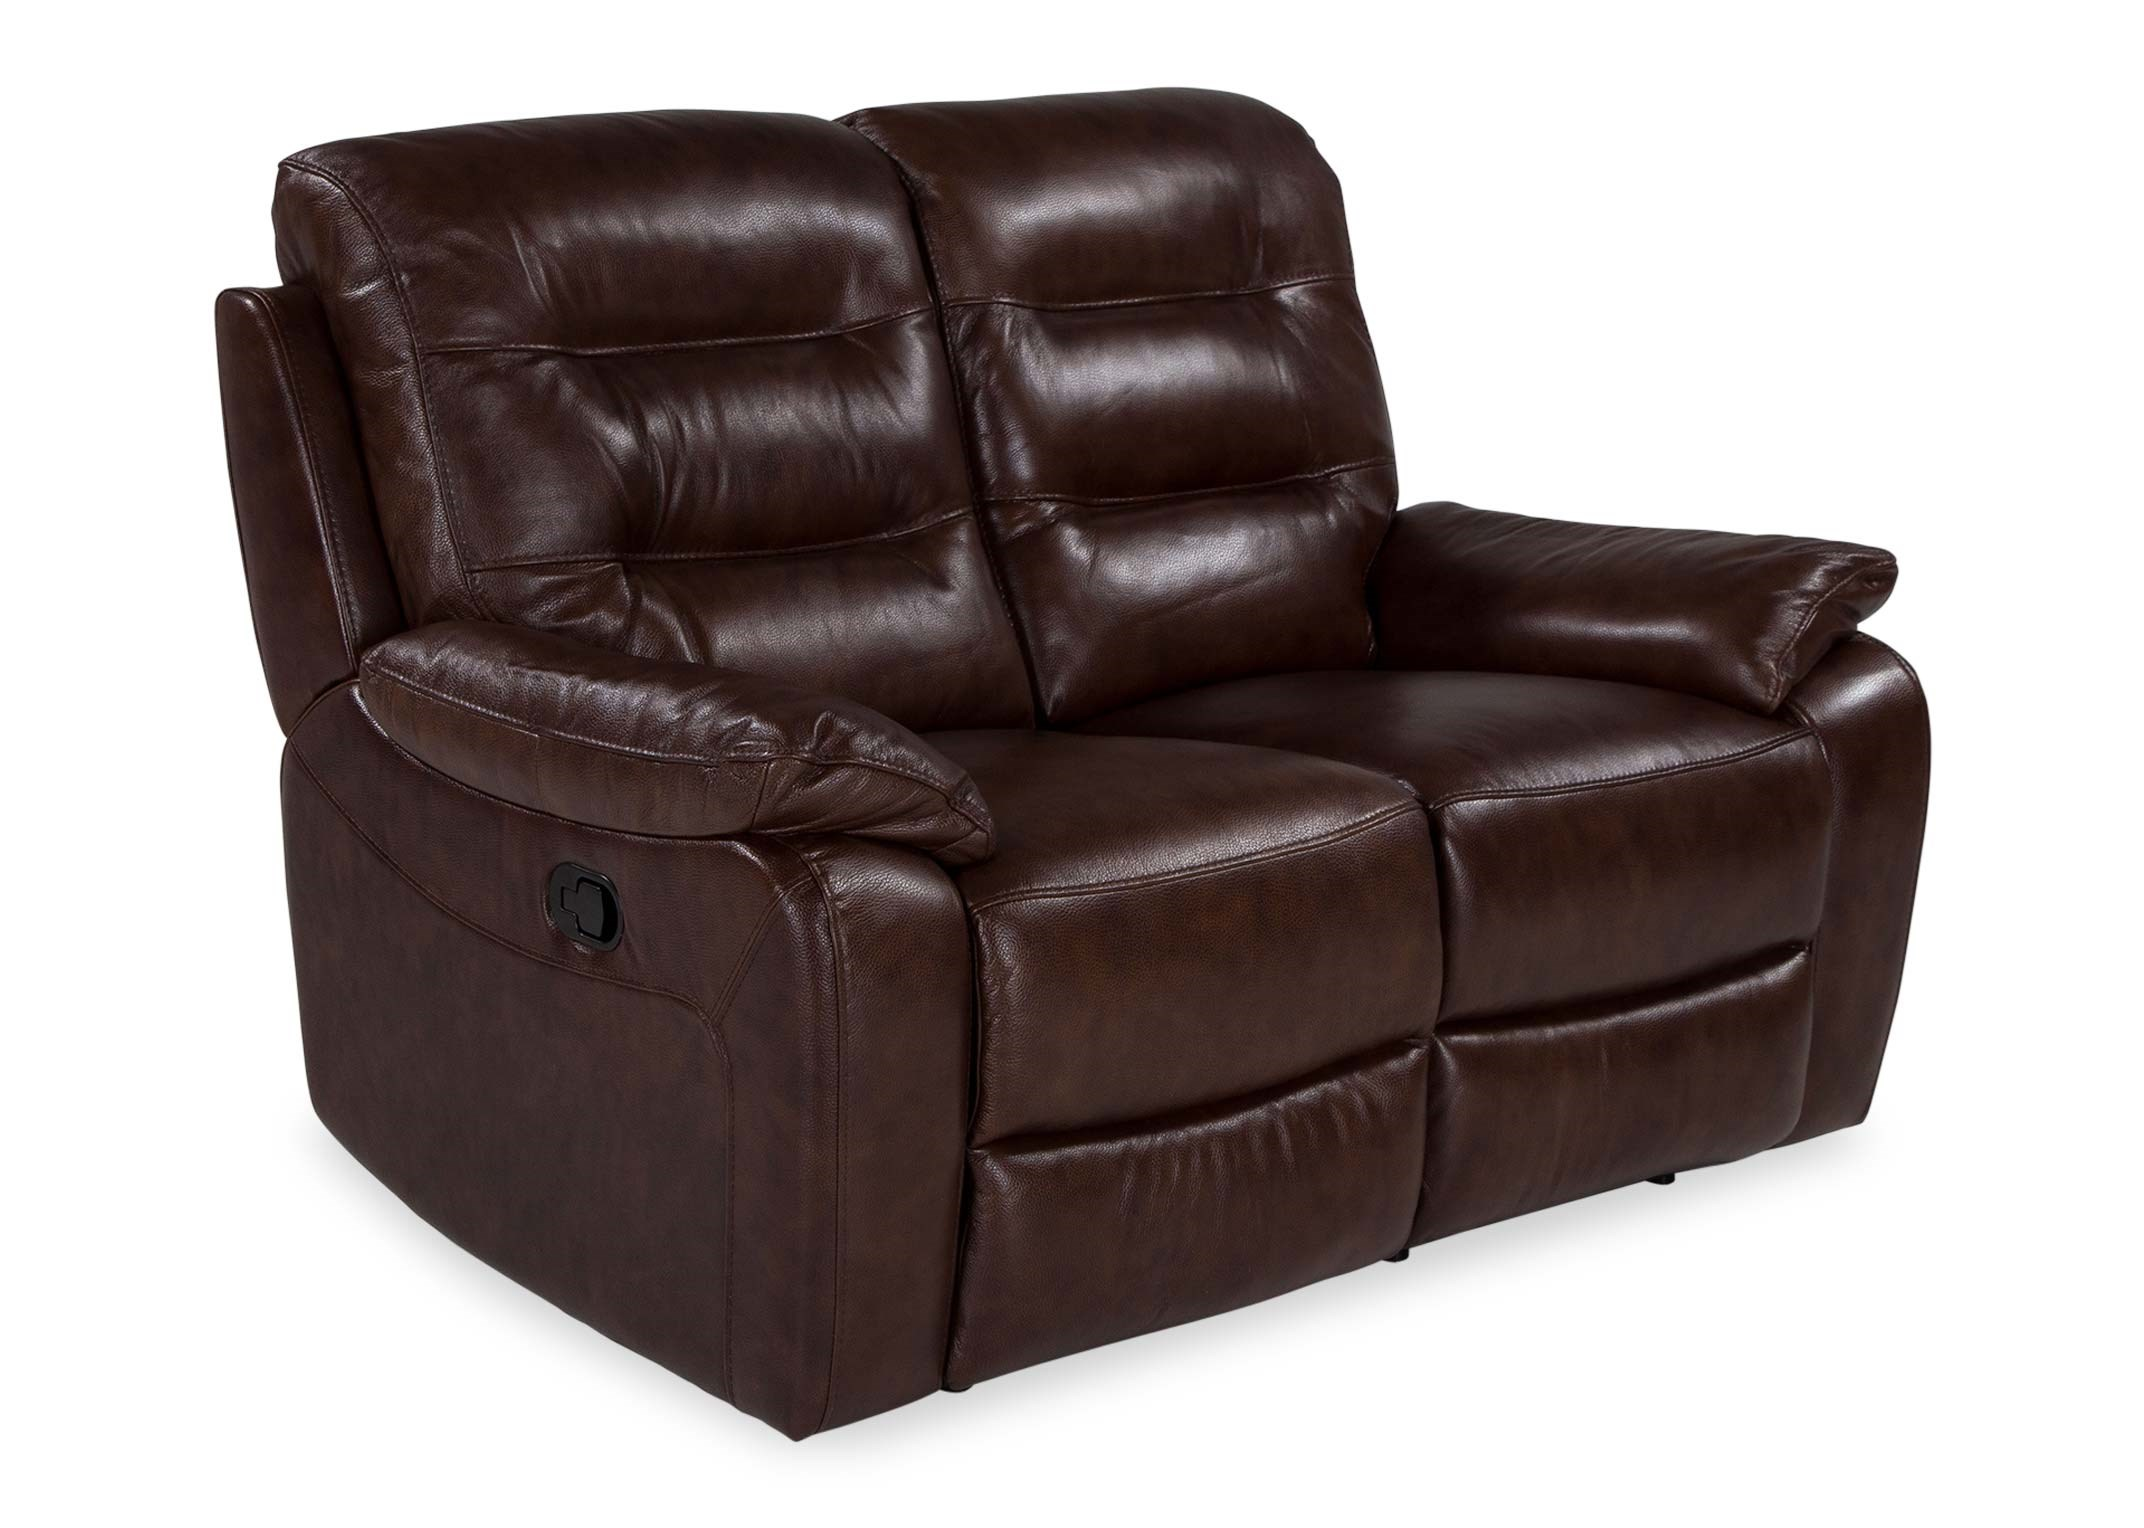 Picture of: 2 Seater Brown Leather Reclining Sofa Navona Ez Living Furniture